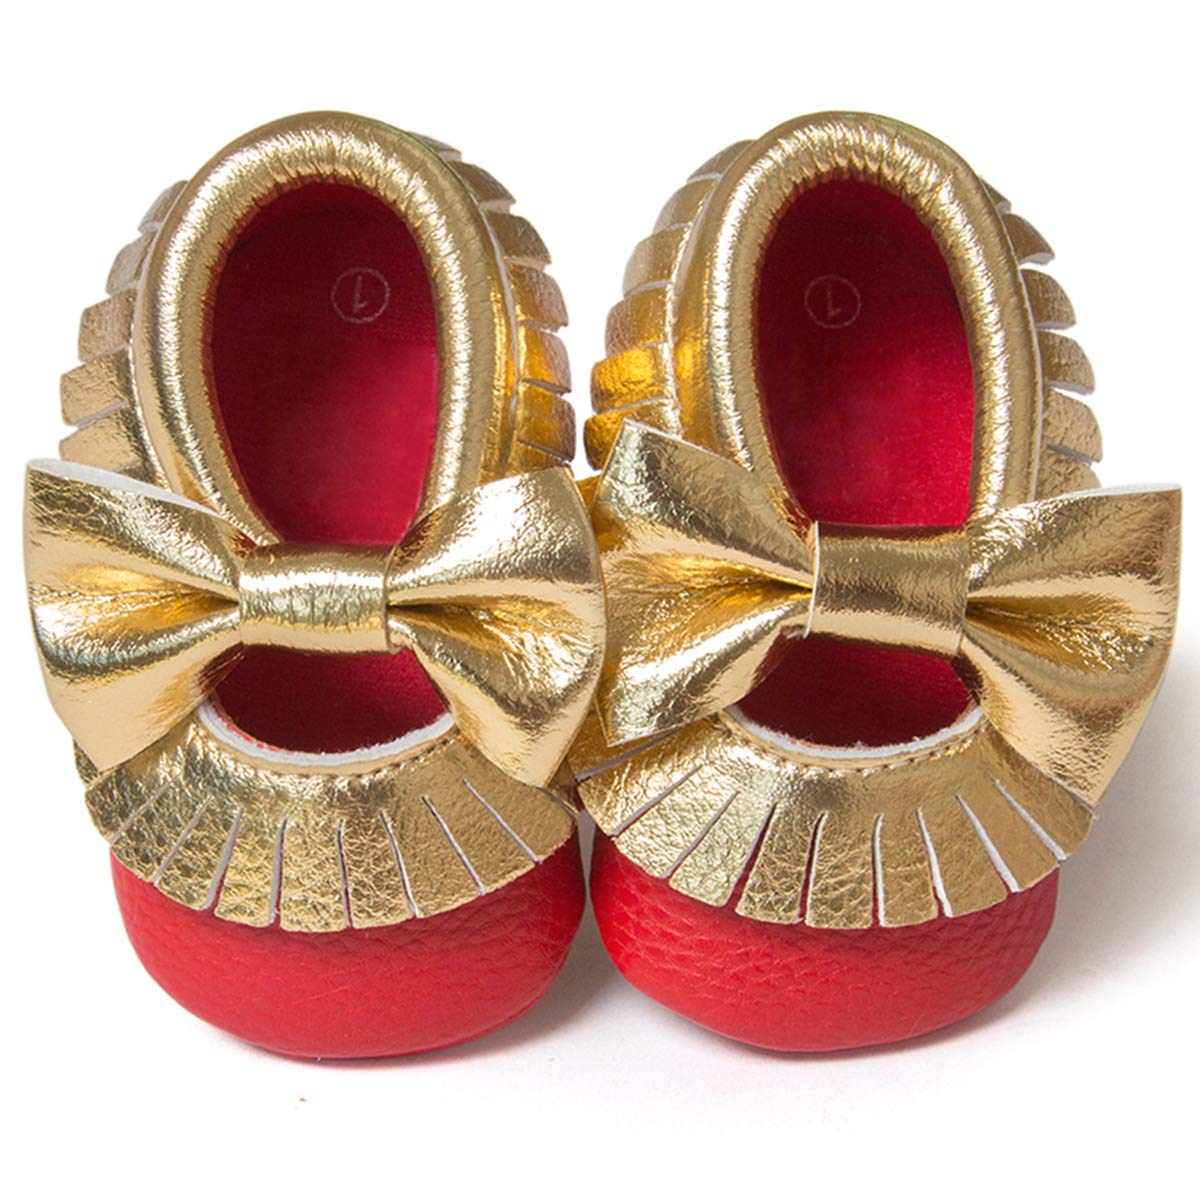 BENHERO Infant Baby Girls Slippers Shoes Soft Sole PU Leather Moccasinss Toddler First Walker Crib Dress Shoes